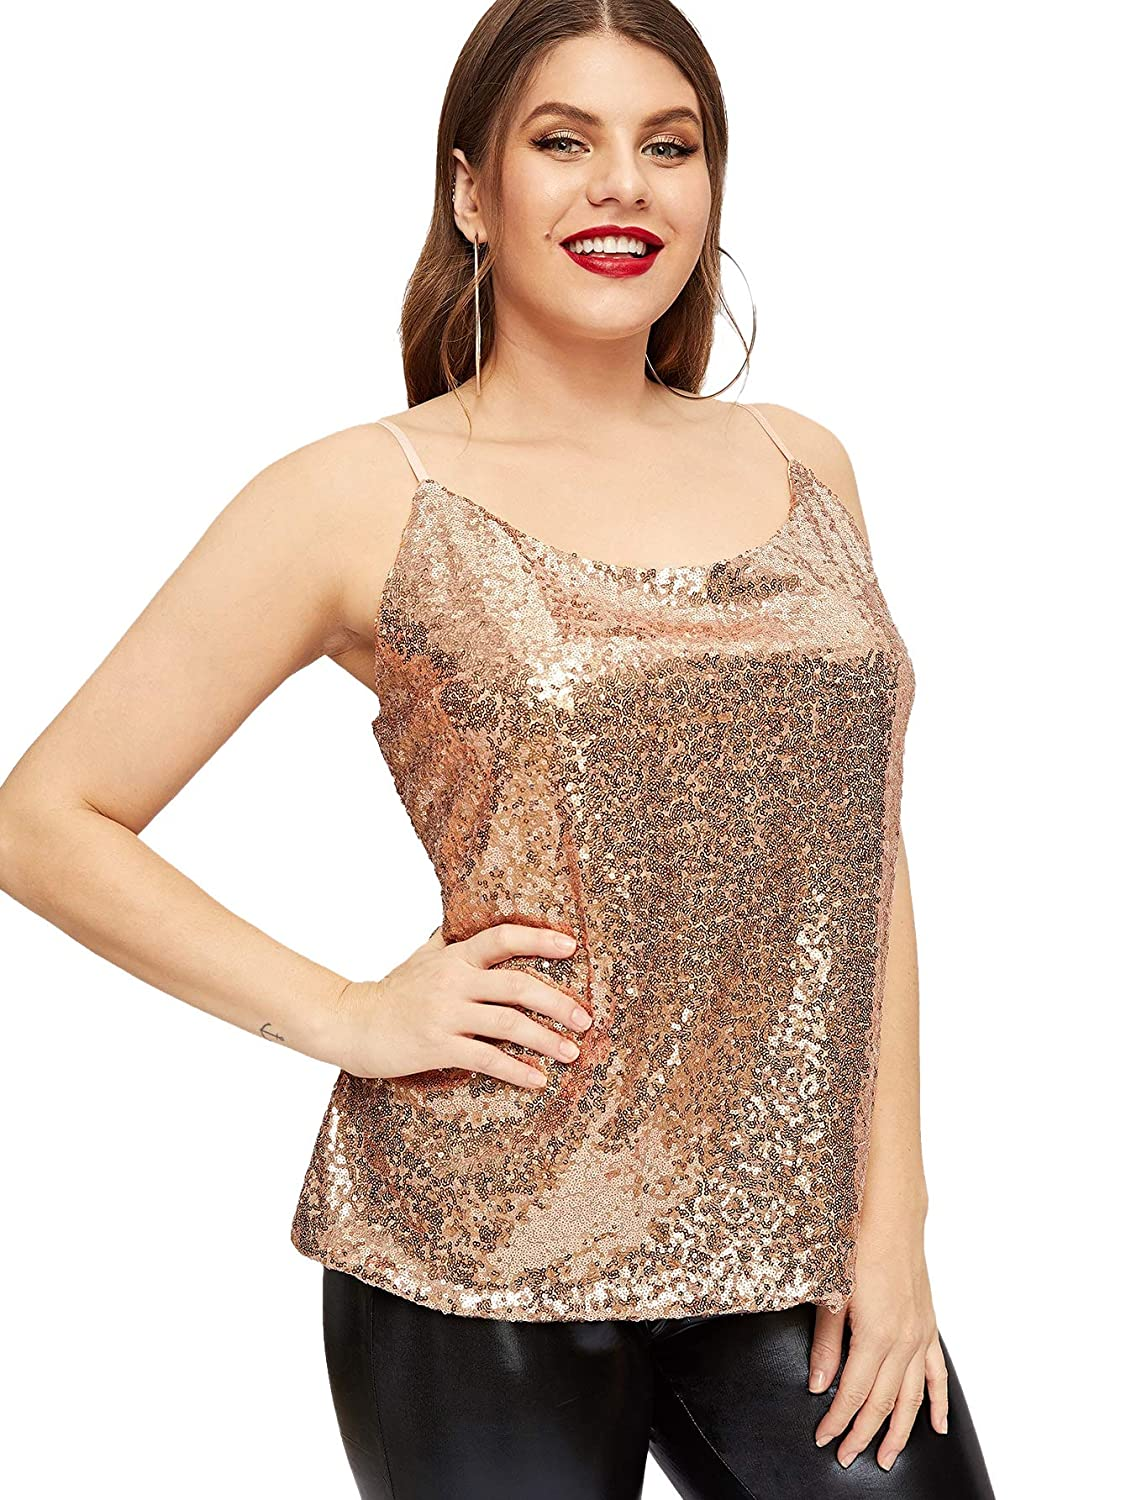 b553fd1ffbb294 Romwe Women's Plus Sequin Vest Sleeveless Strap Party Cami Tank Tops at  Amazon Women's Clothing store: